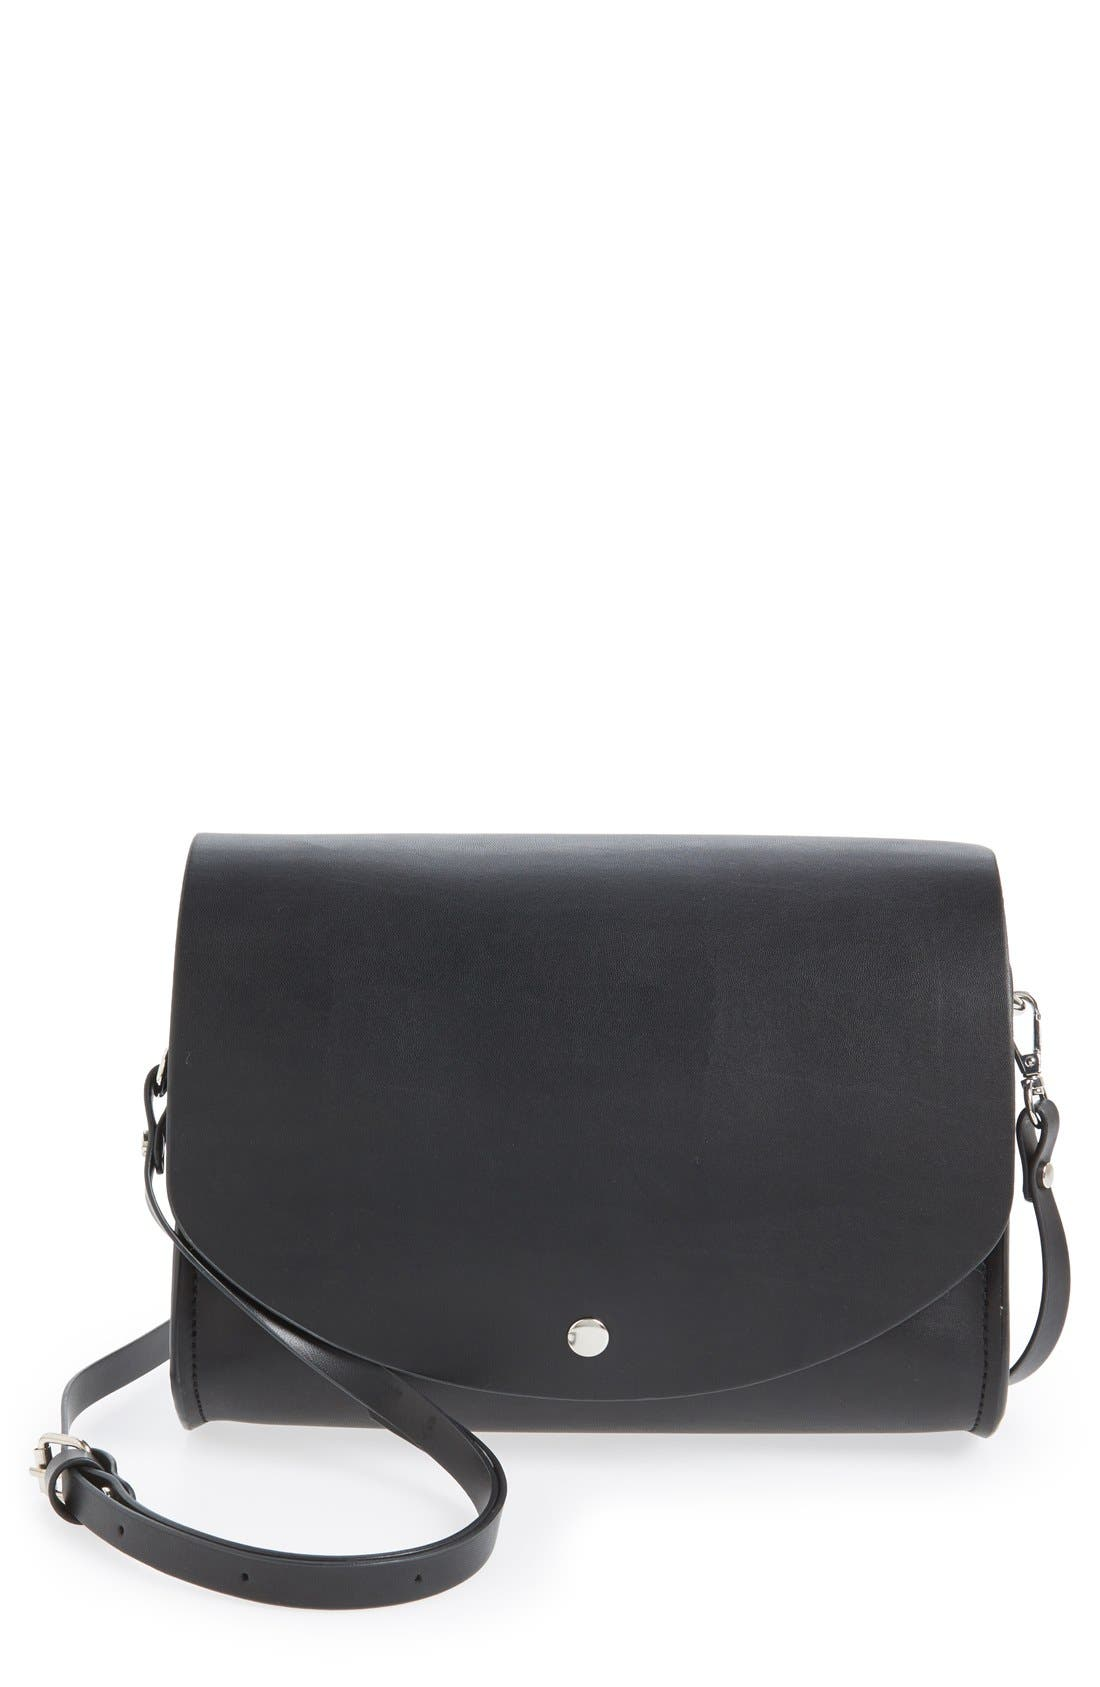 CESCA Faux Leather Crossbody Bag, Main, color, 001